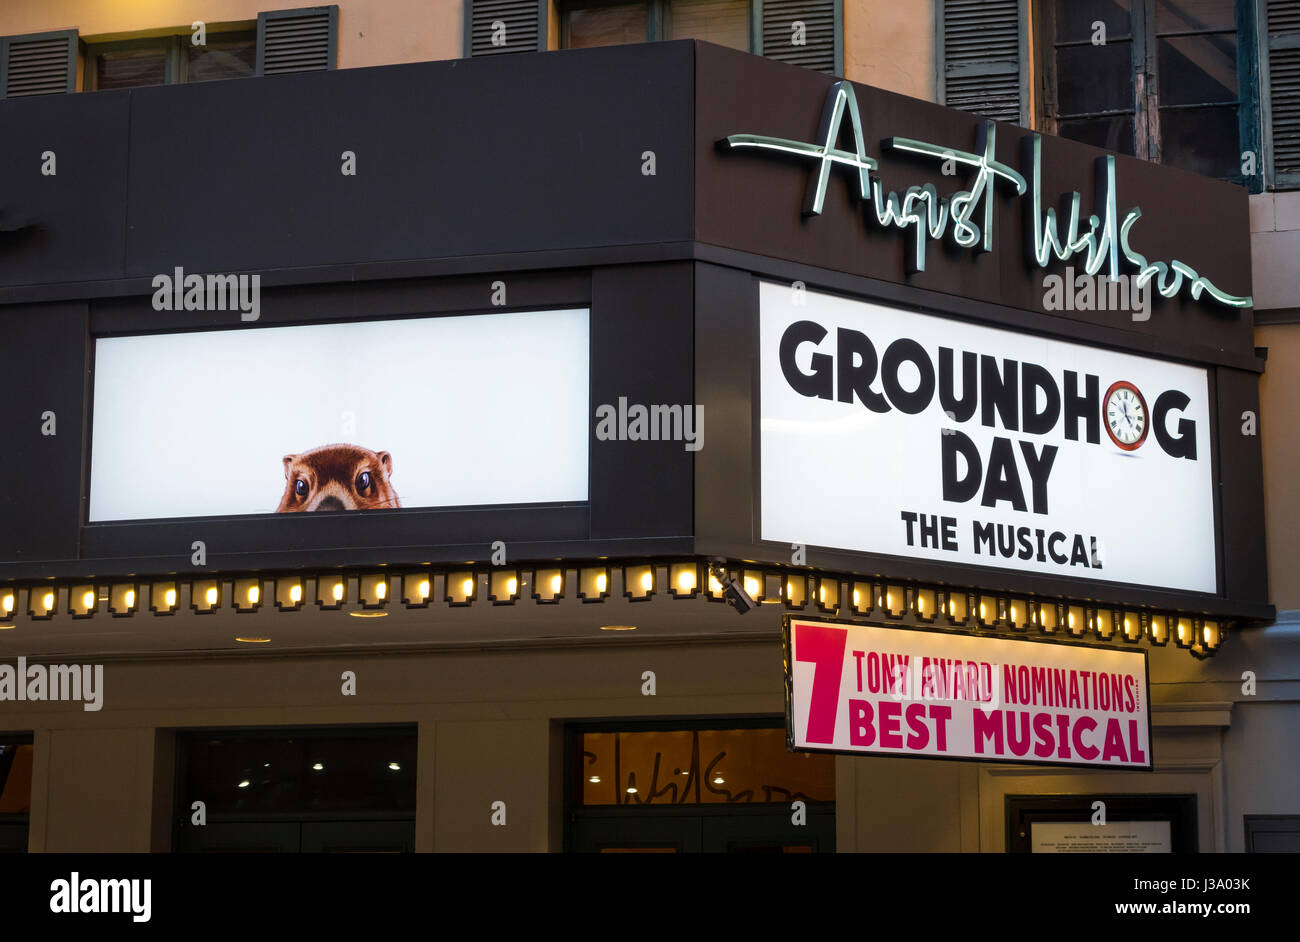 Groundhog Day the Musical at the August Wilson Theatre on Broadway - Stock Image